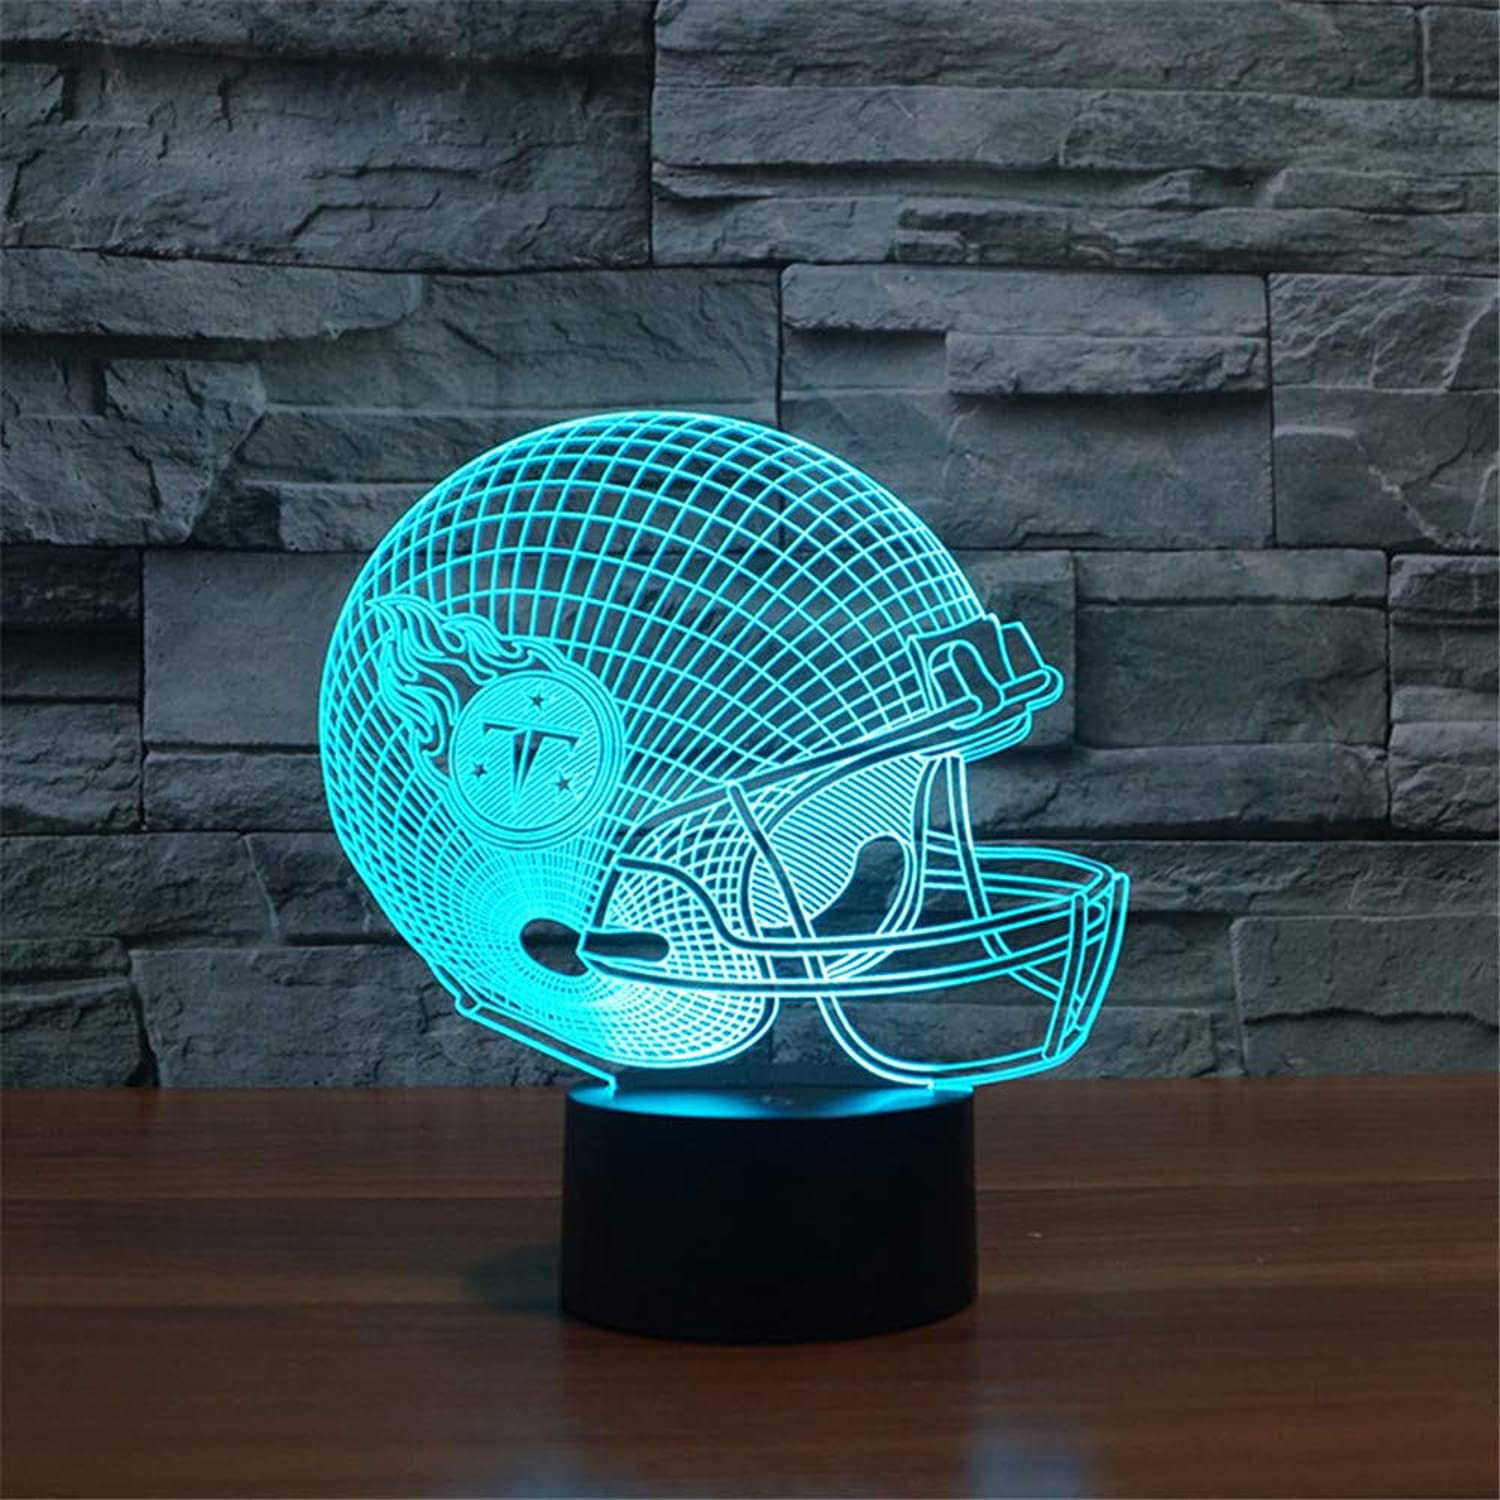 3D LED Night Light Table Desk Lamps 3D Optical Illusion Visual Lamp 7 colors Touch Table Desk Lamp for Christmas Birthday Gift Football